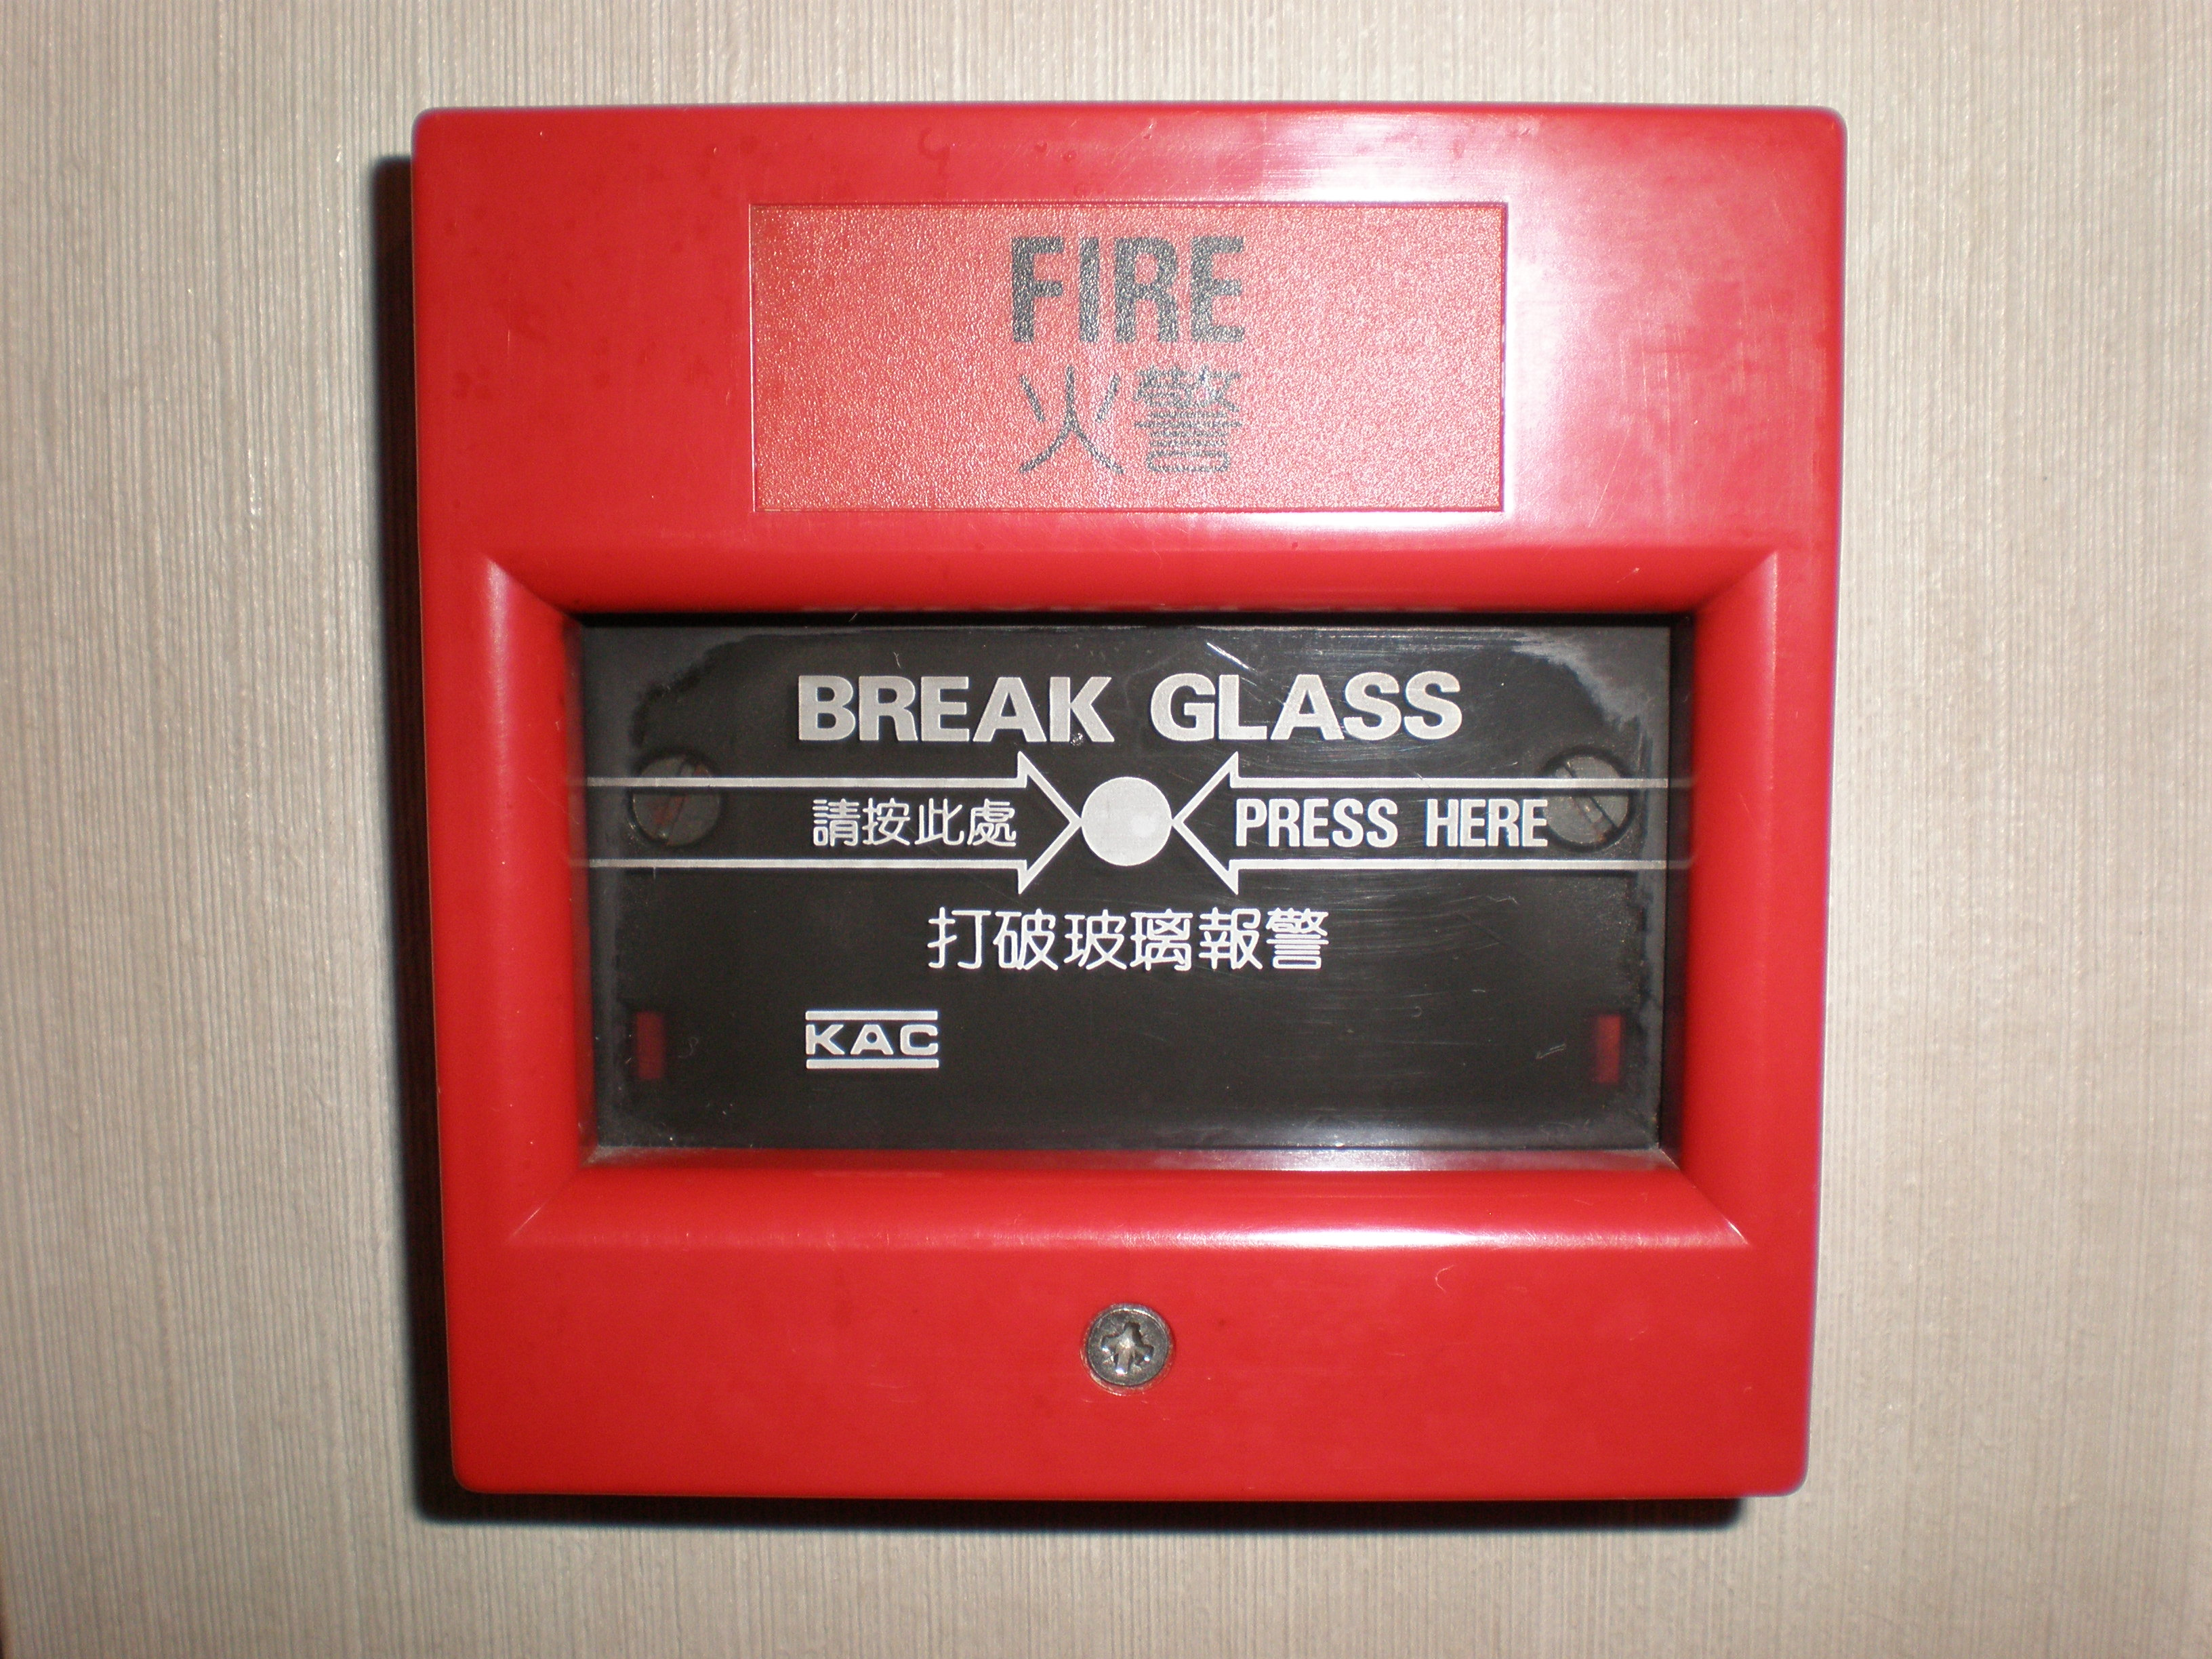 File:KAC square fire alarm.JPG - Wikimedia Commons